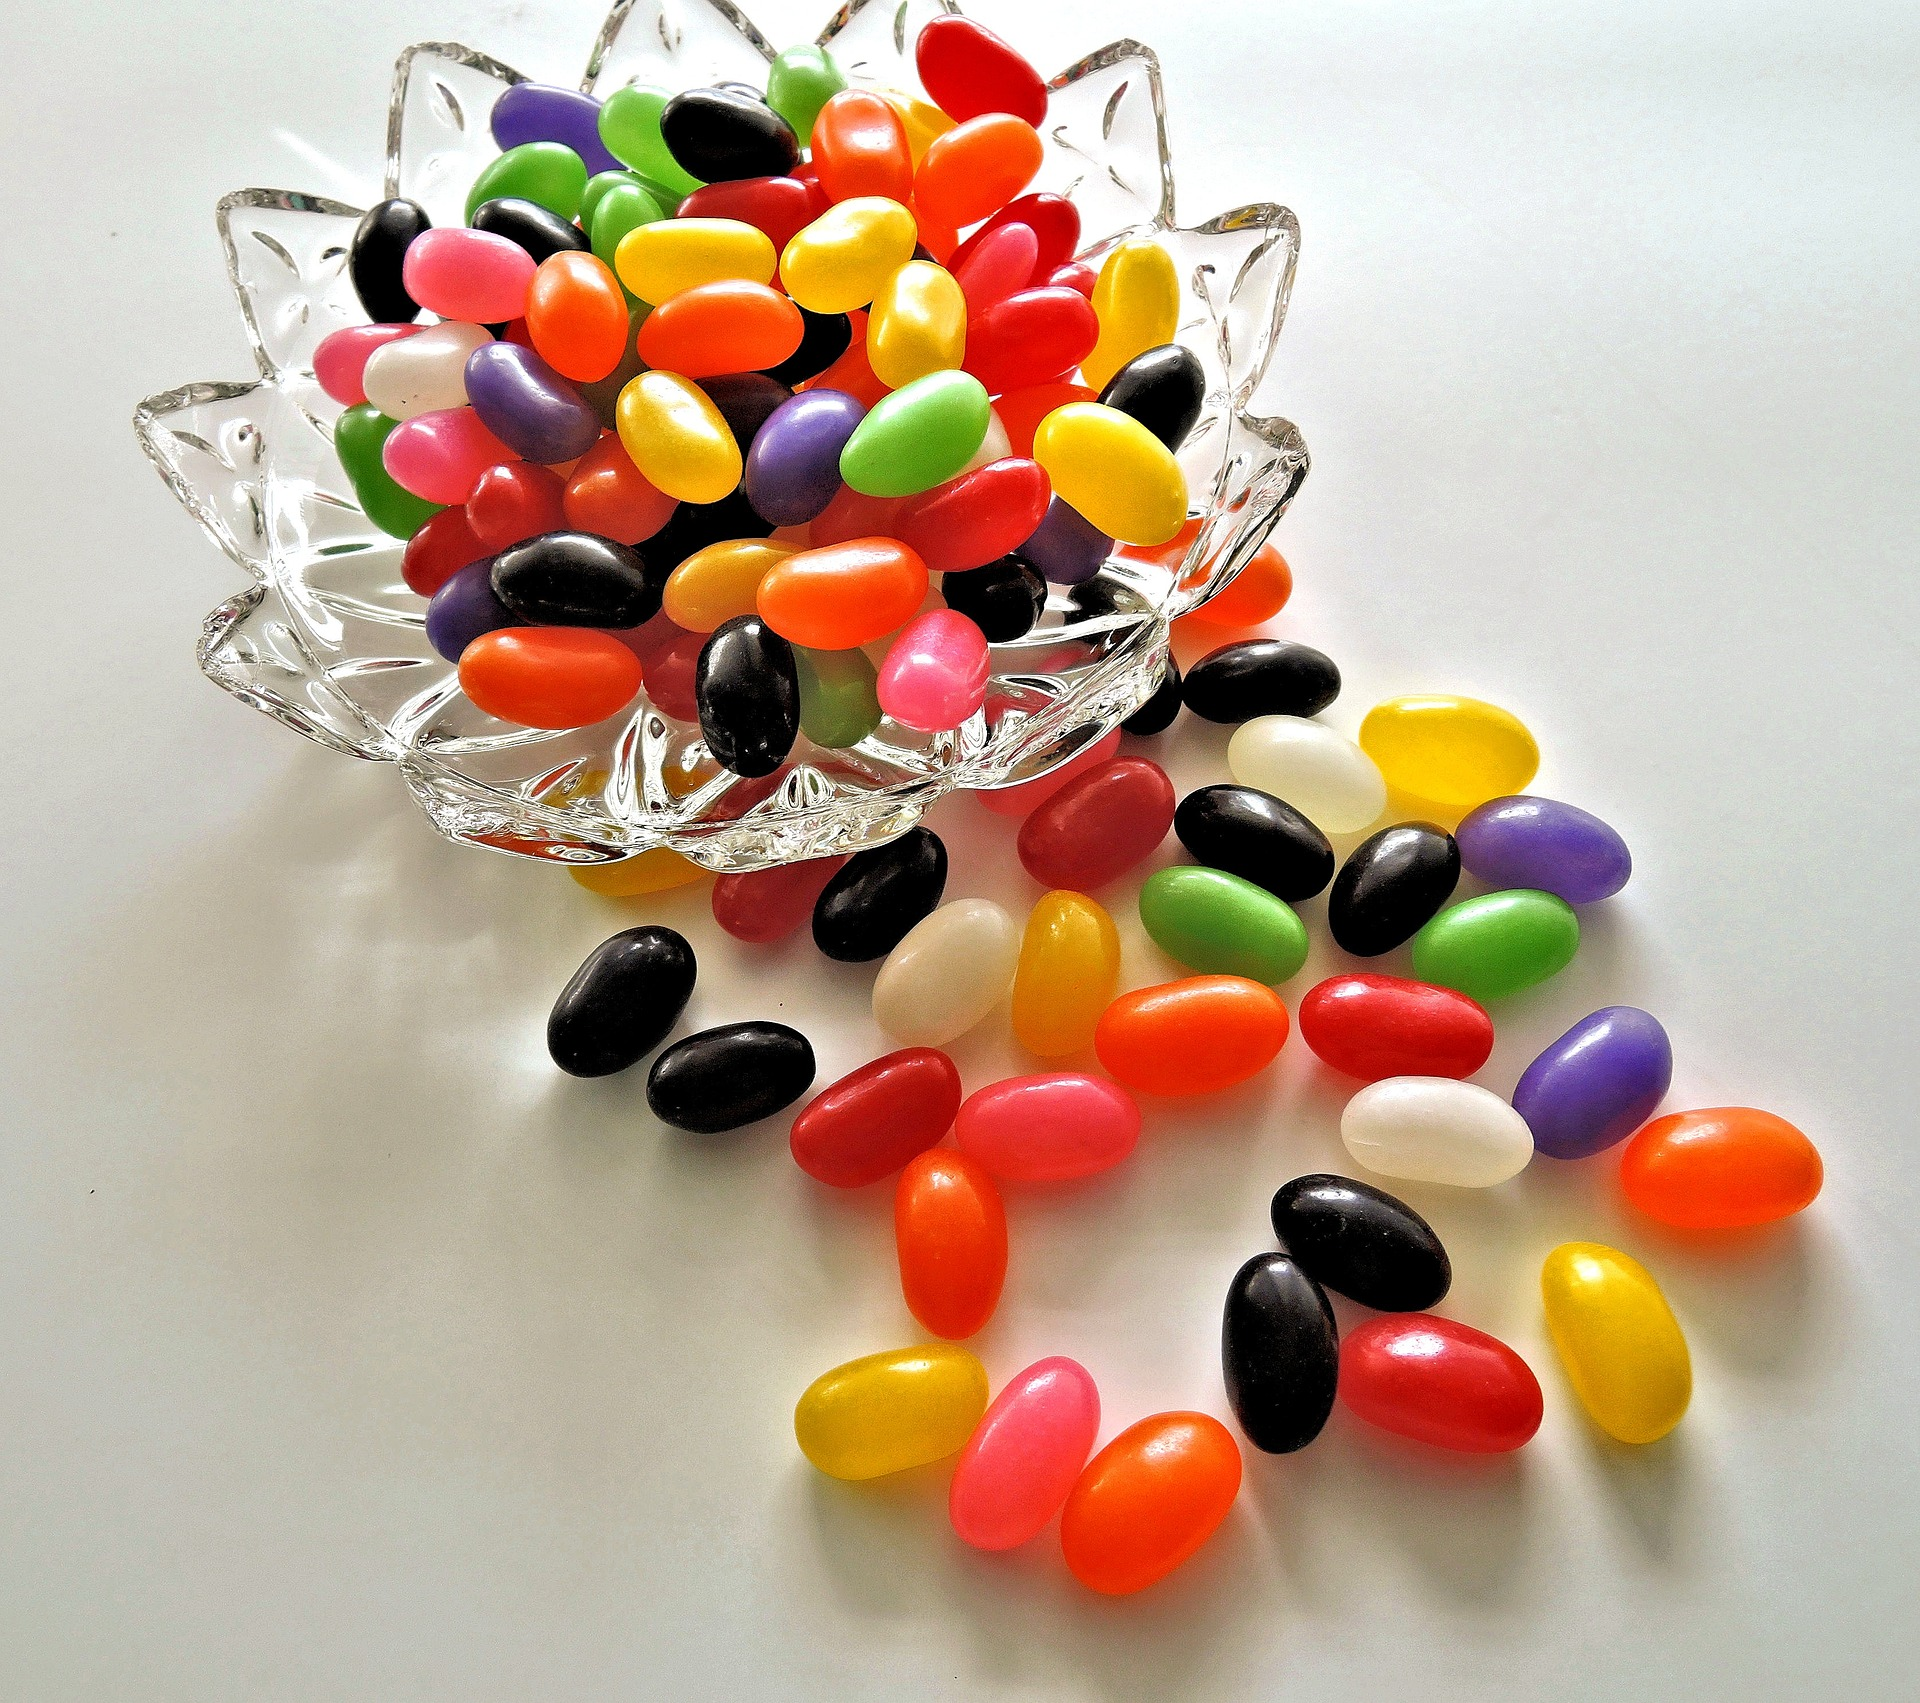 jelly-beans-939754_1920